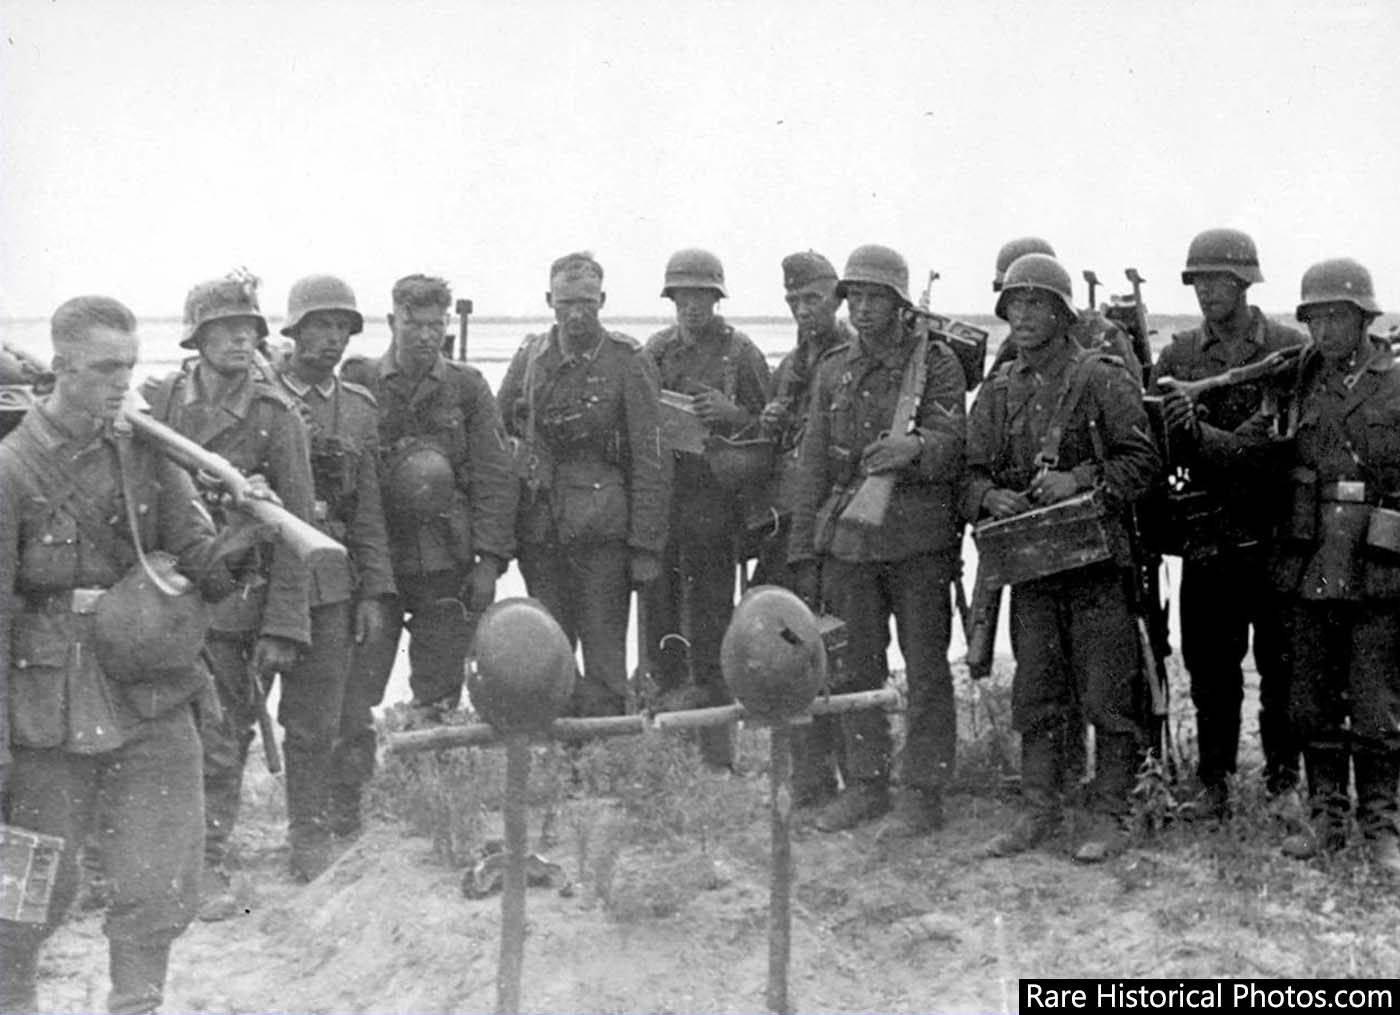 German soldiers at the graves of their fallen comrades at Stalingrad.